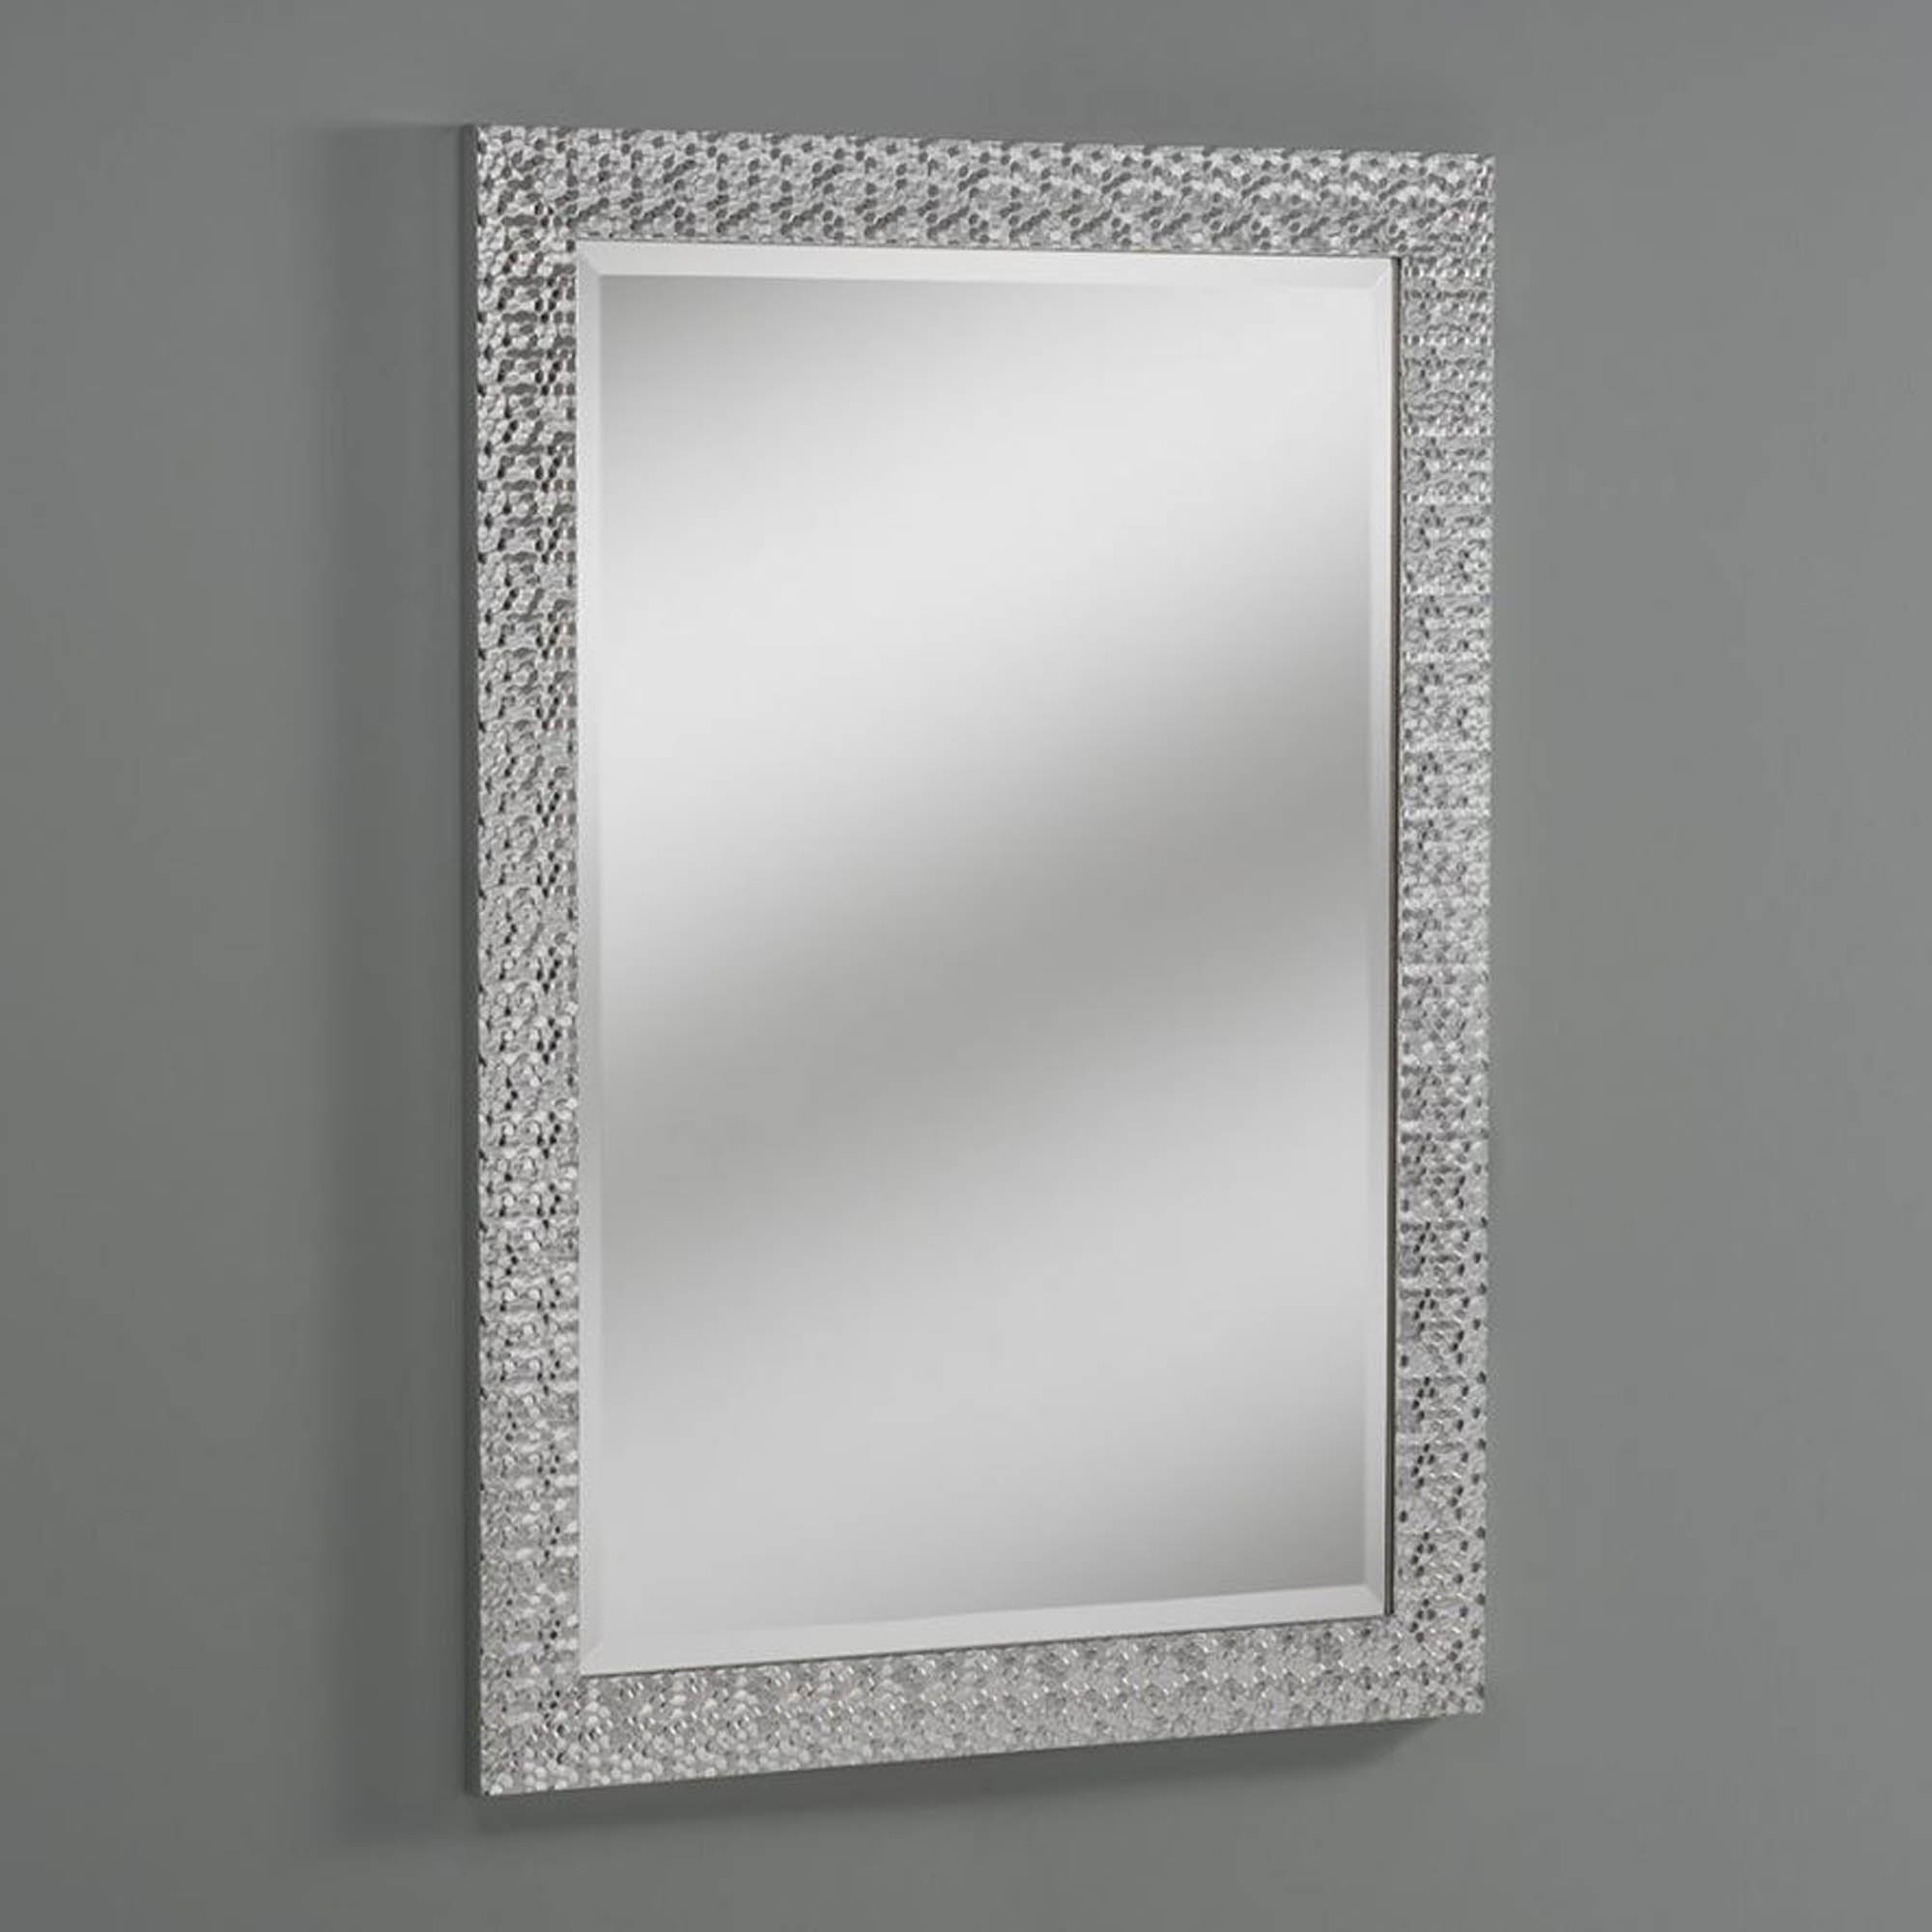 Decorative Hex Silver Wall Mirror Pertaining To Most Recent Silver Wall Mirrors (View 4 of 20)